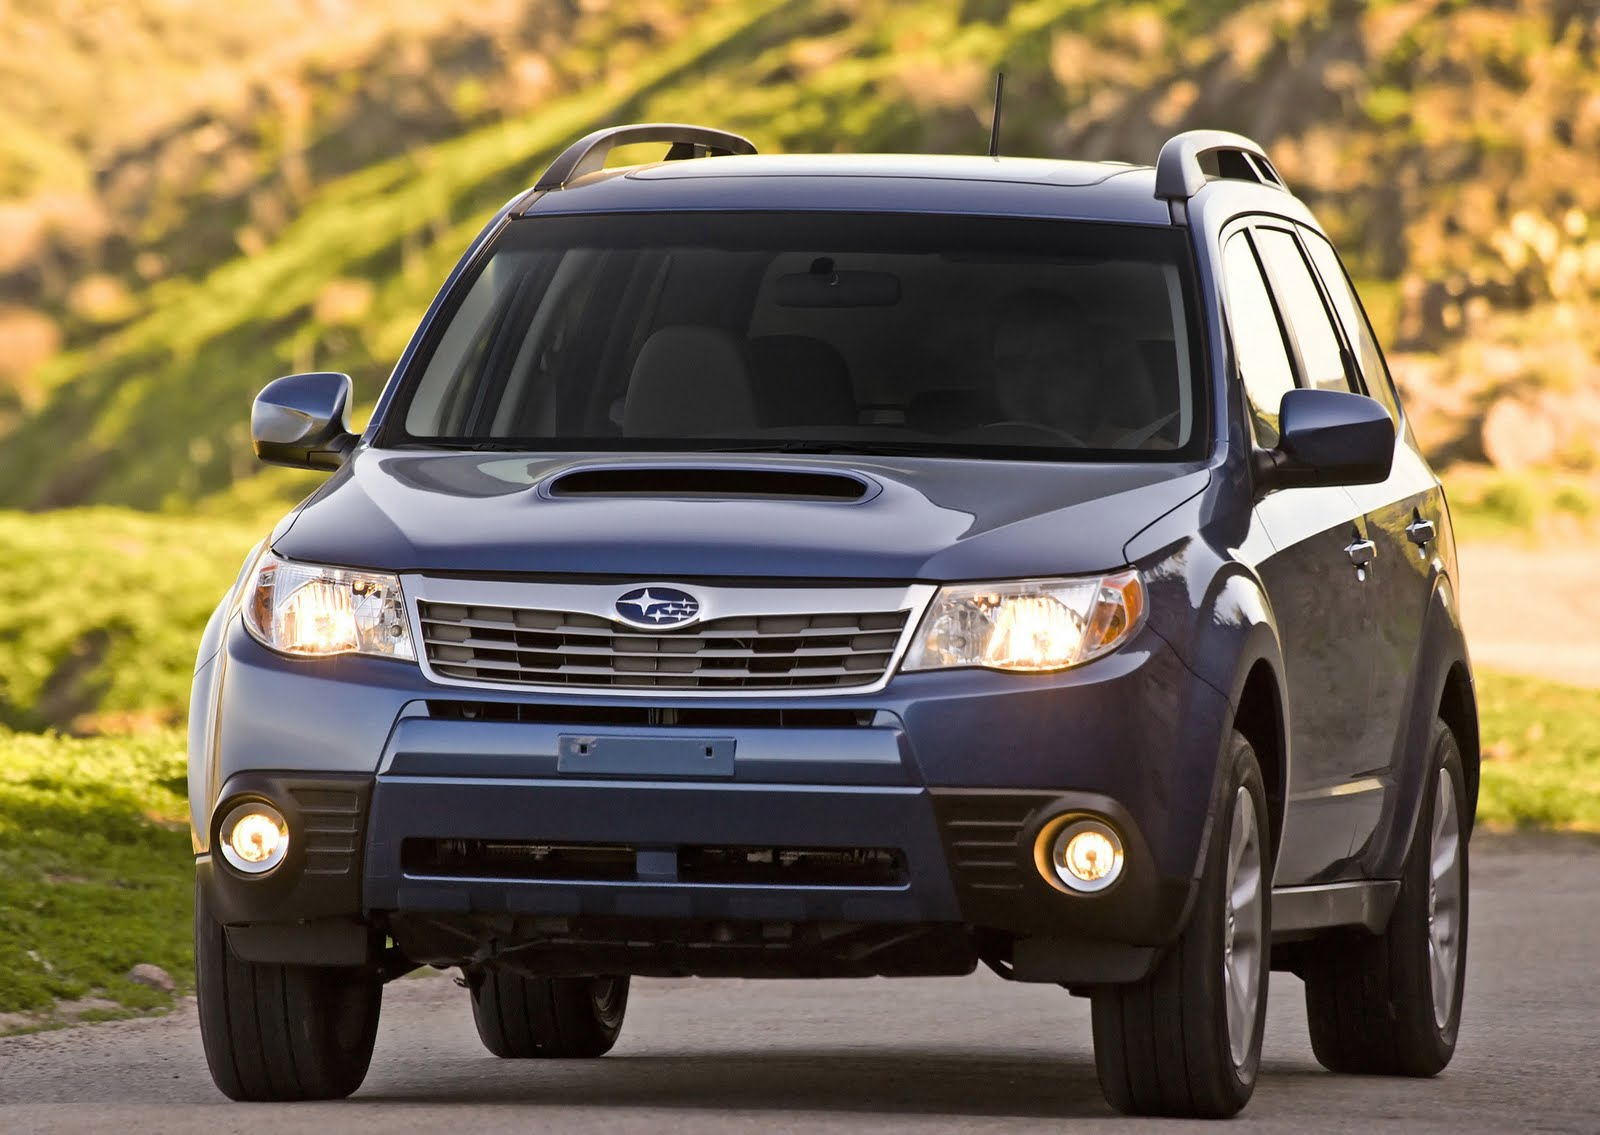 All Types 2011 forester : 2011 Subaru Forester Packages Offer Large Variety | Tallahassee ...